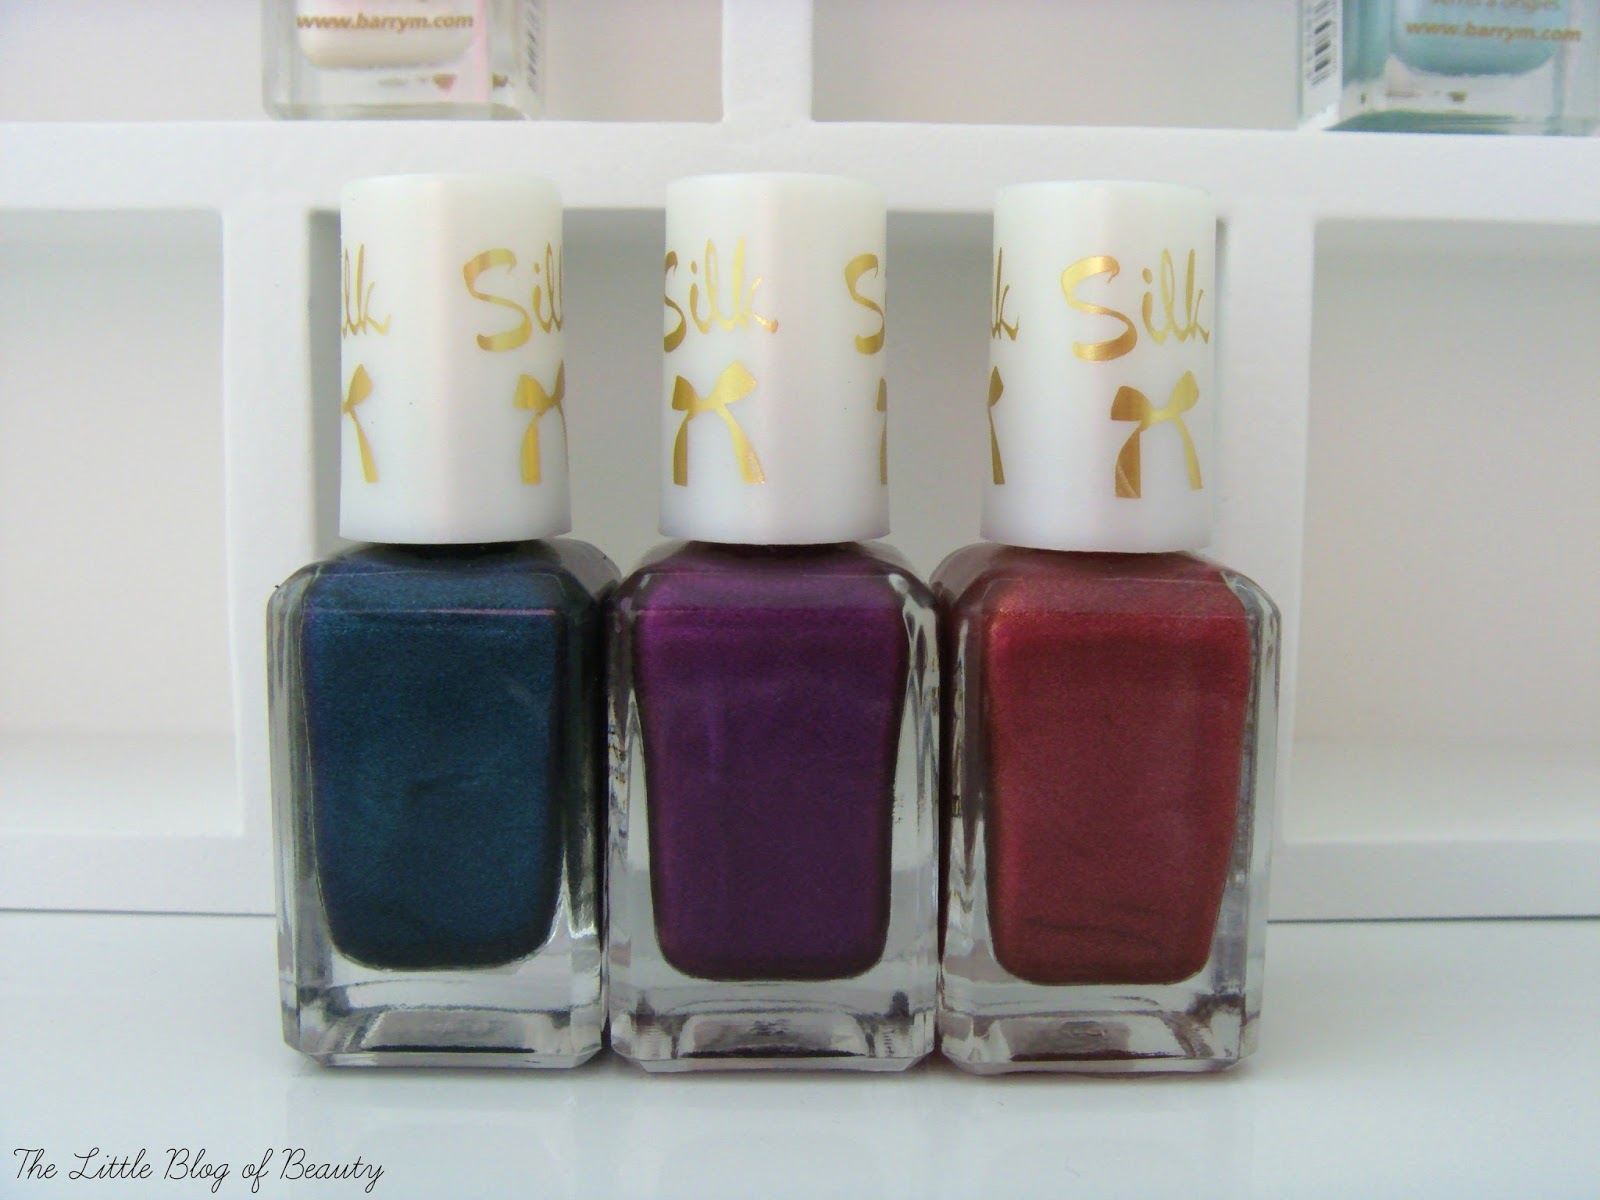 Barry M Silk Forest, Orchid and Poppy